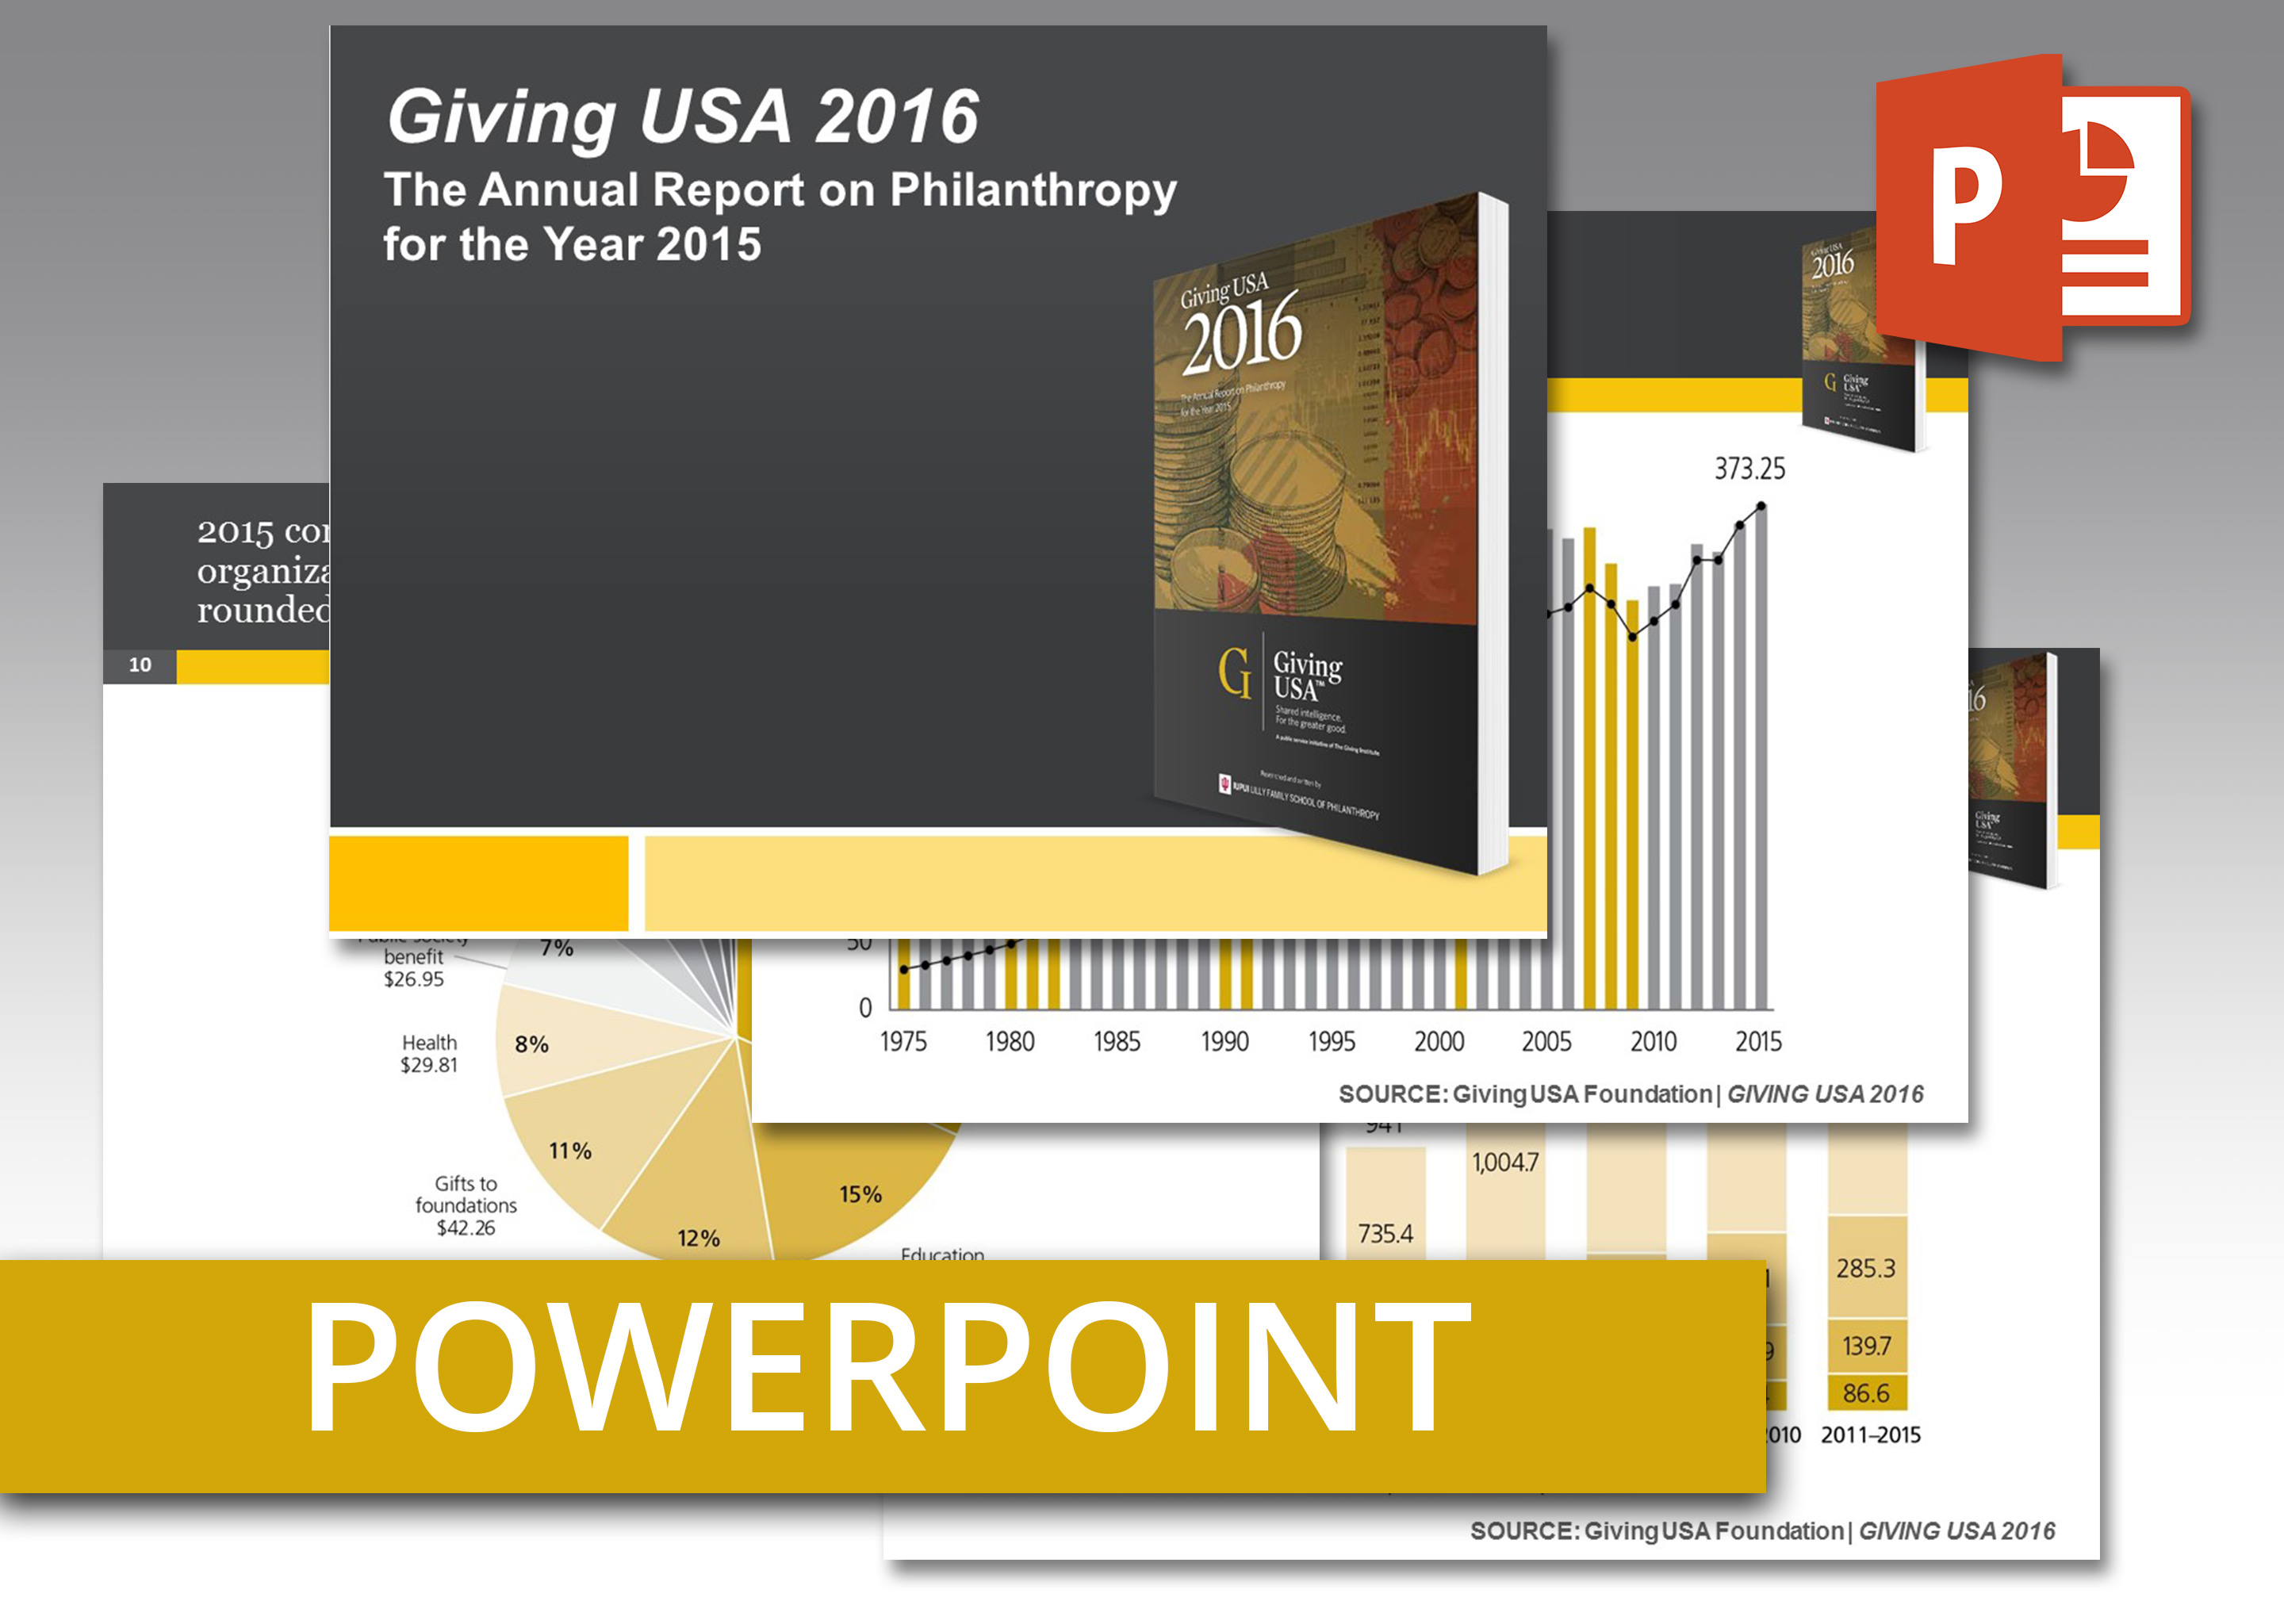 Coolmathgamesus  Pleasing Giving Usa  Powerpoint An Easytouse Presentation Of Report  With Engaging Giving Usa  Powerpoint An Easytouse Presentation Of Report Findings Including Talking Points With Easy On The Eye Powerpoint Theme Ideas Also Nursing Powerpoint Slides In Addition Powerpoint Animation Tools And Animated Clipart For Powerpoint Free As Well As Powerpoint Plus Additionally Powerpoint As Screensaver From Givingusaorg With Coolmathgamesus  Engaging Giving Usa  Powerpoint An Easytouse Presentation Of Report  With Easy On The Eye Giving Usa  Powerpoint An Easytouse Presentation Of Report Findings Including Talking Points And Pleasing Powerpoint Theme Ideas Also Nursing Powerpoint Slides In Addition Powerpoint Animation Tools From Givingusaorg